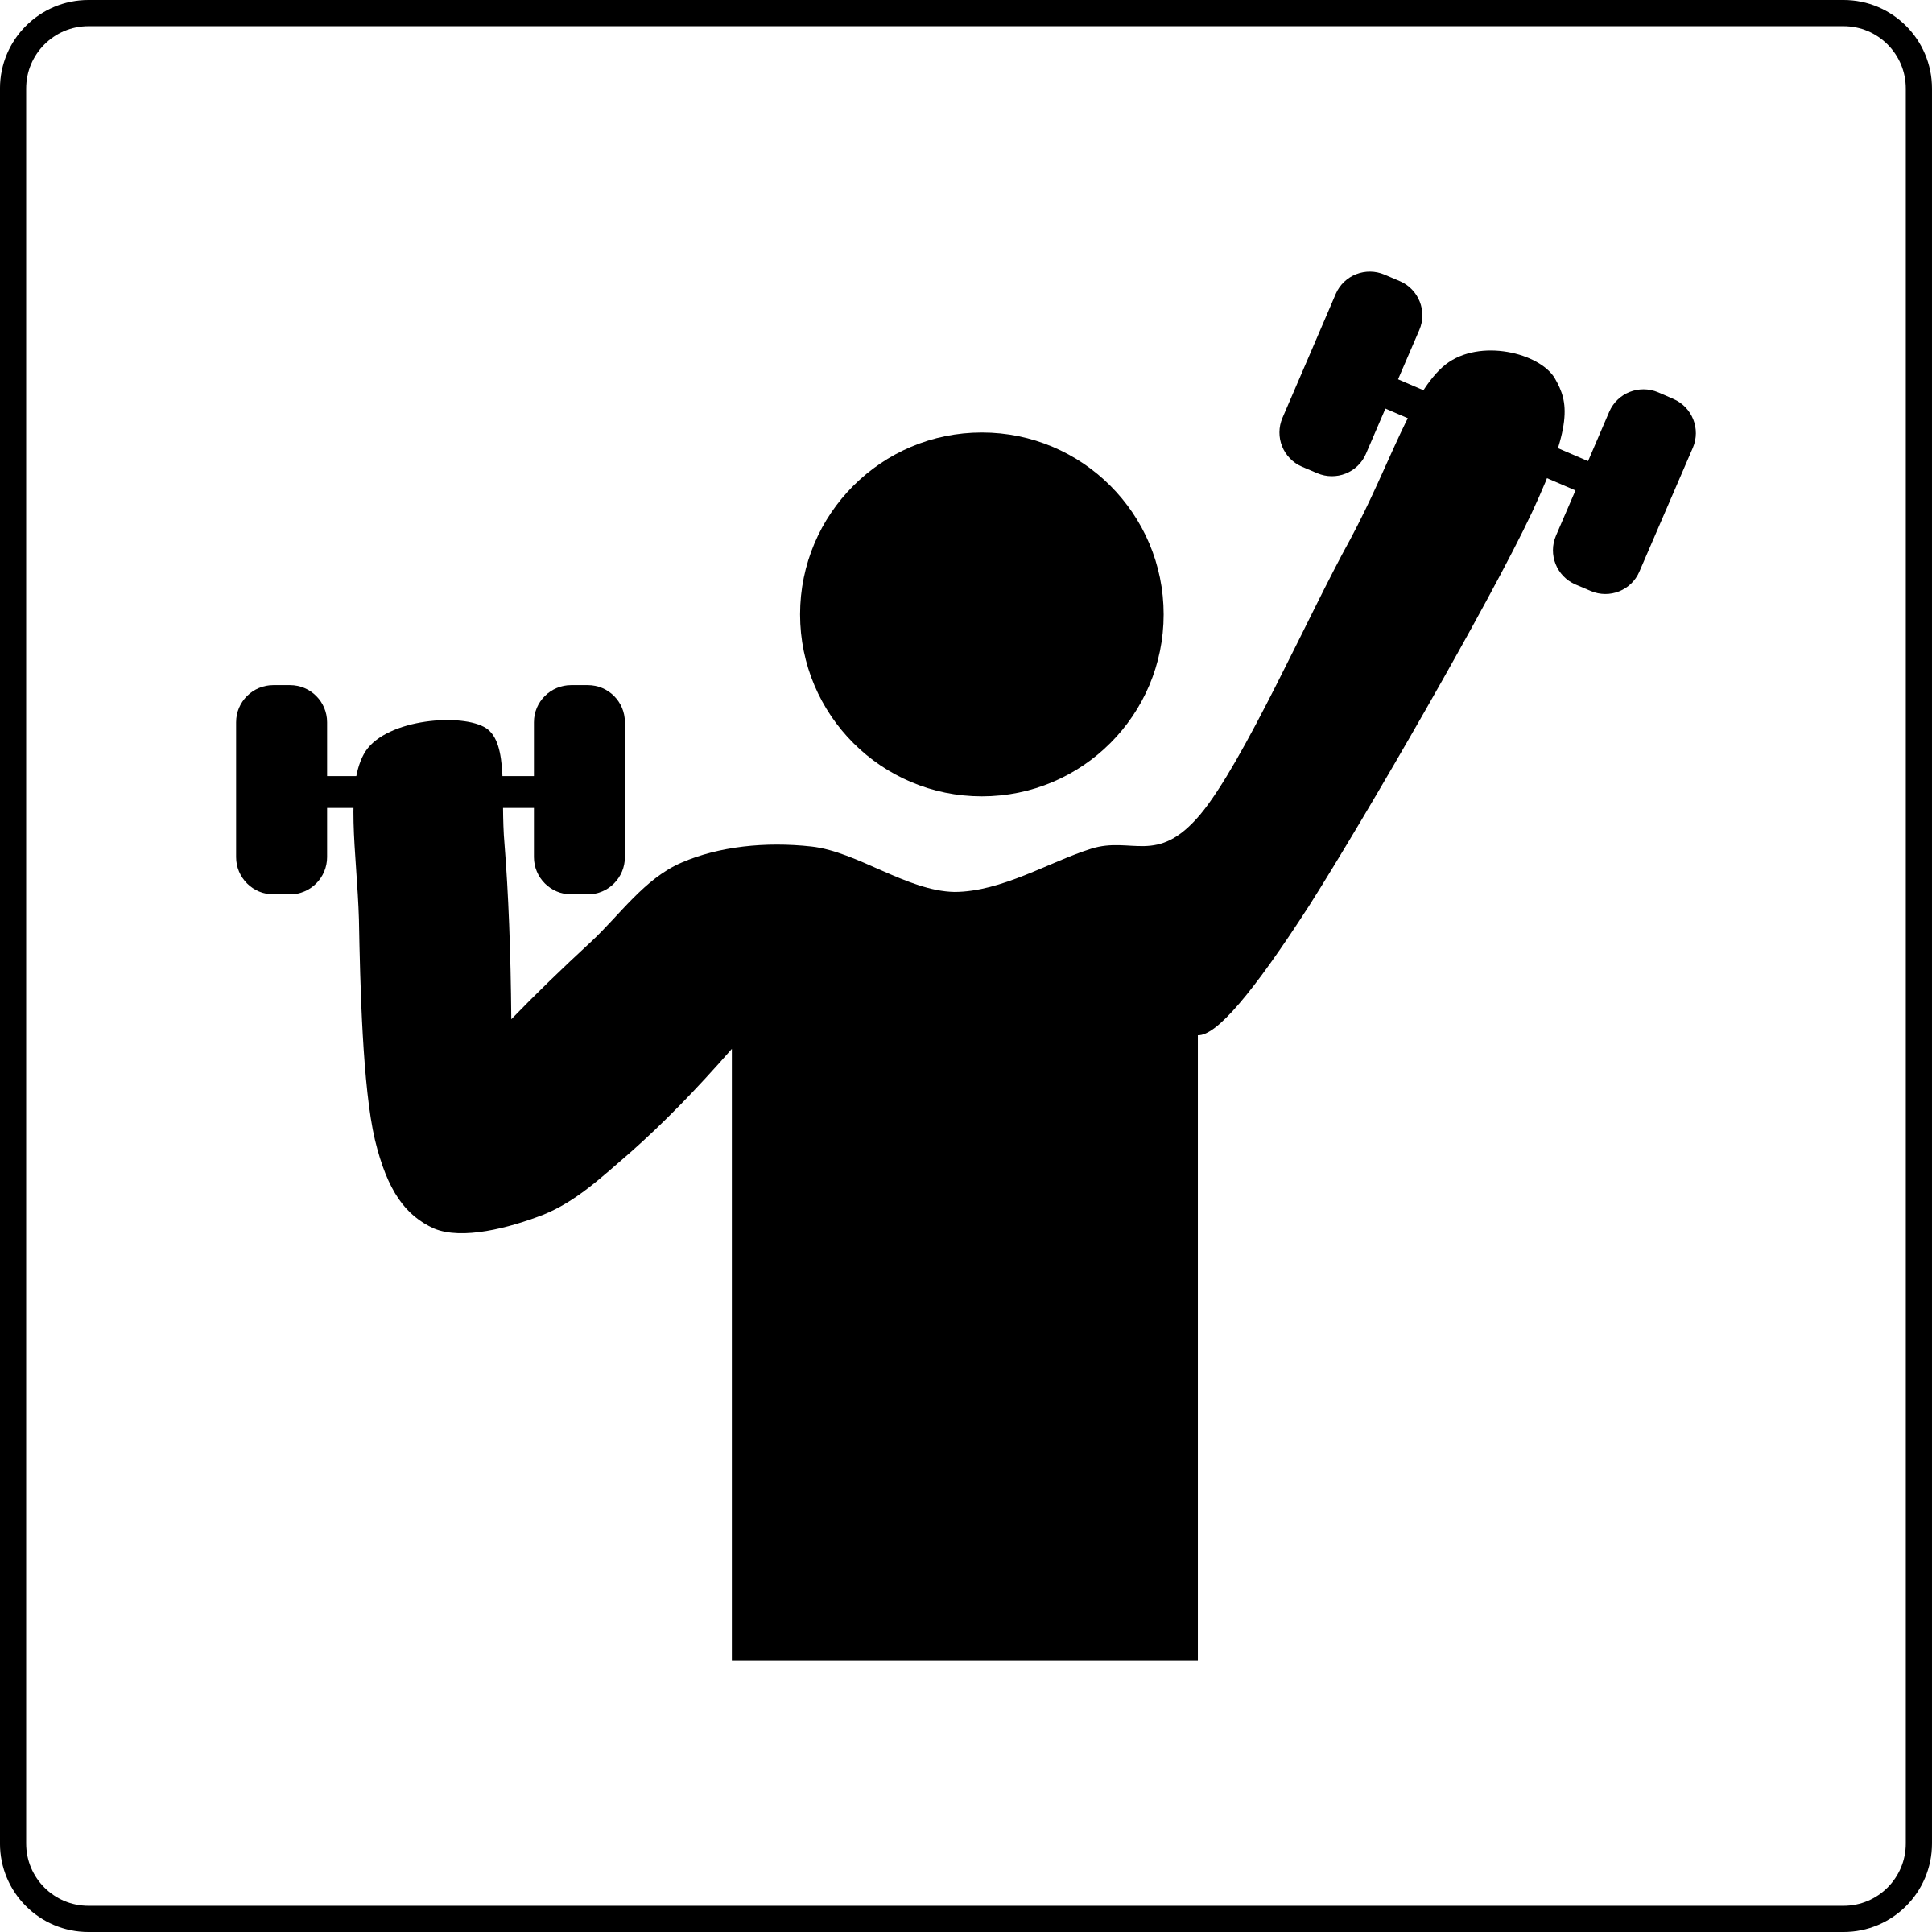 Gym Png Black And White & Free Gym Black And White.png Transparent.